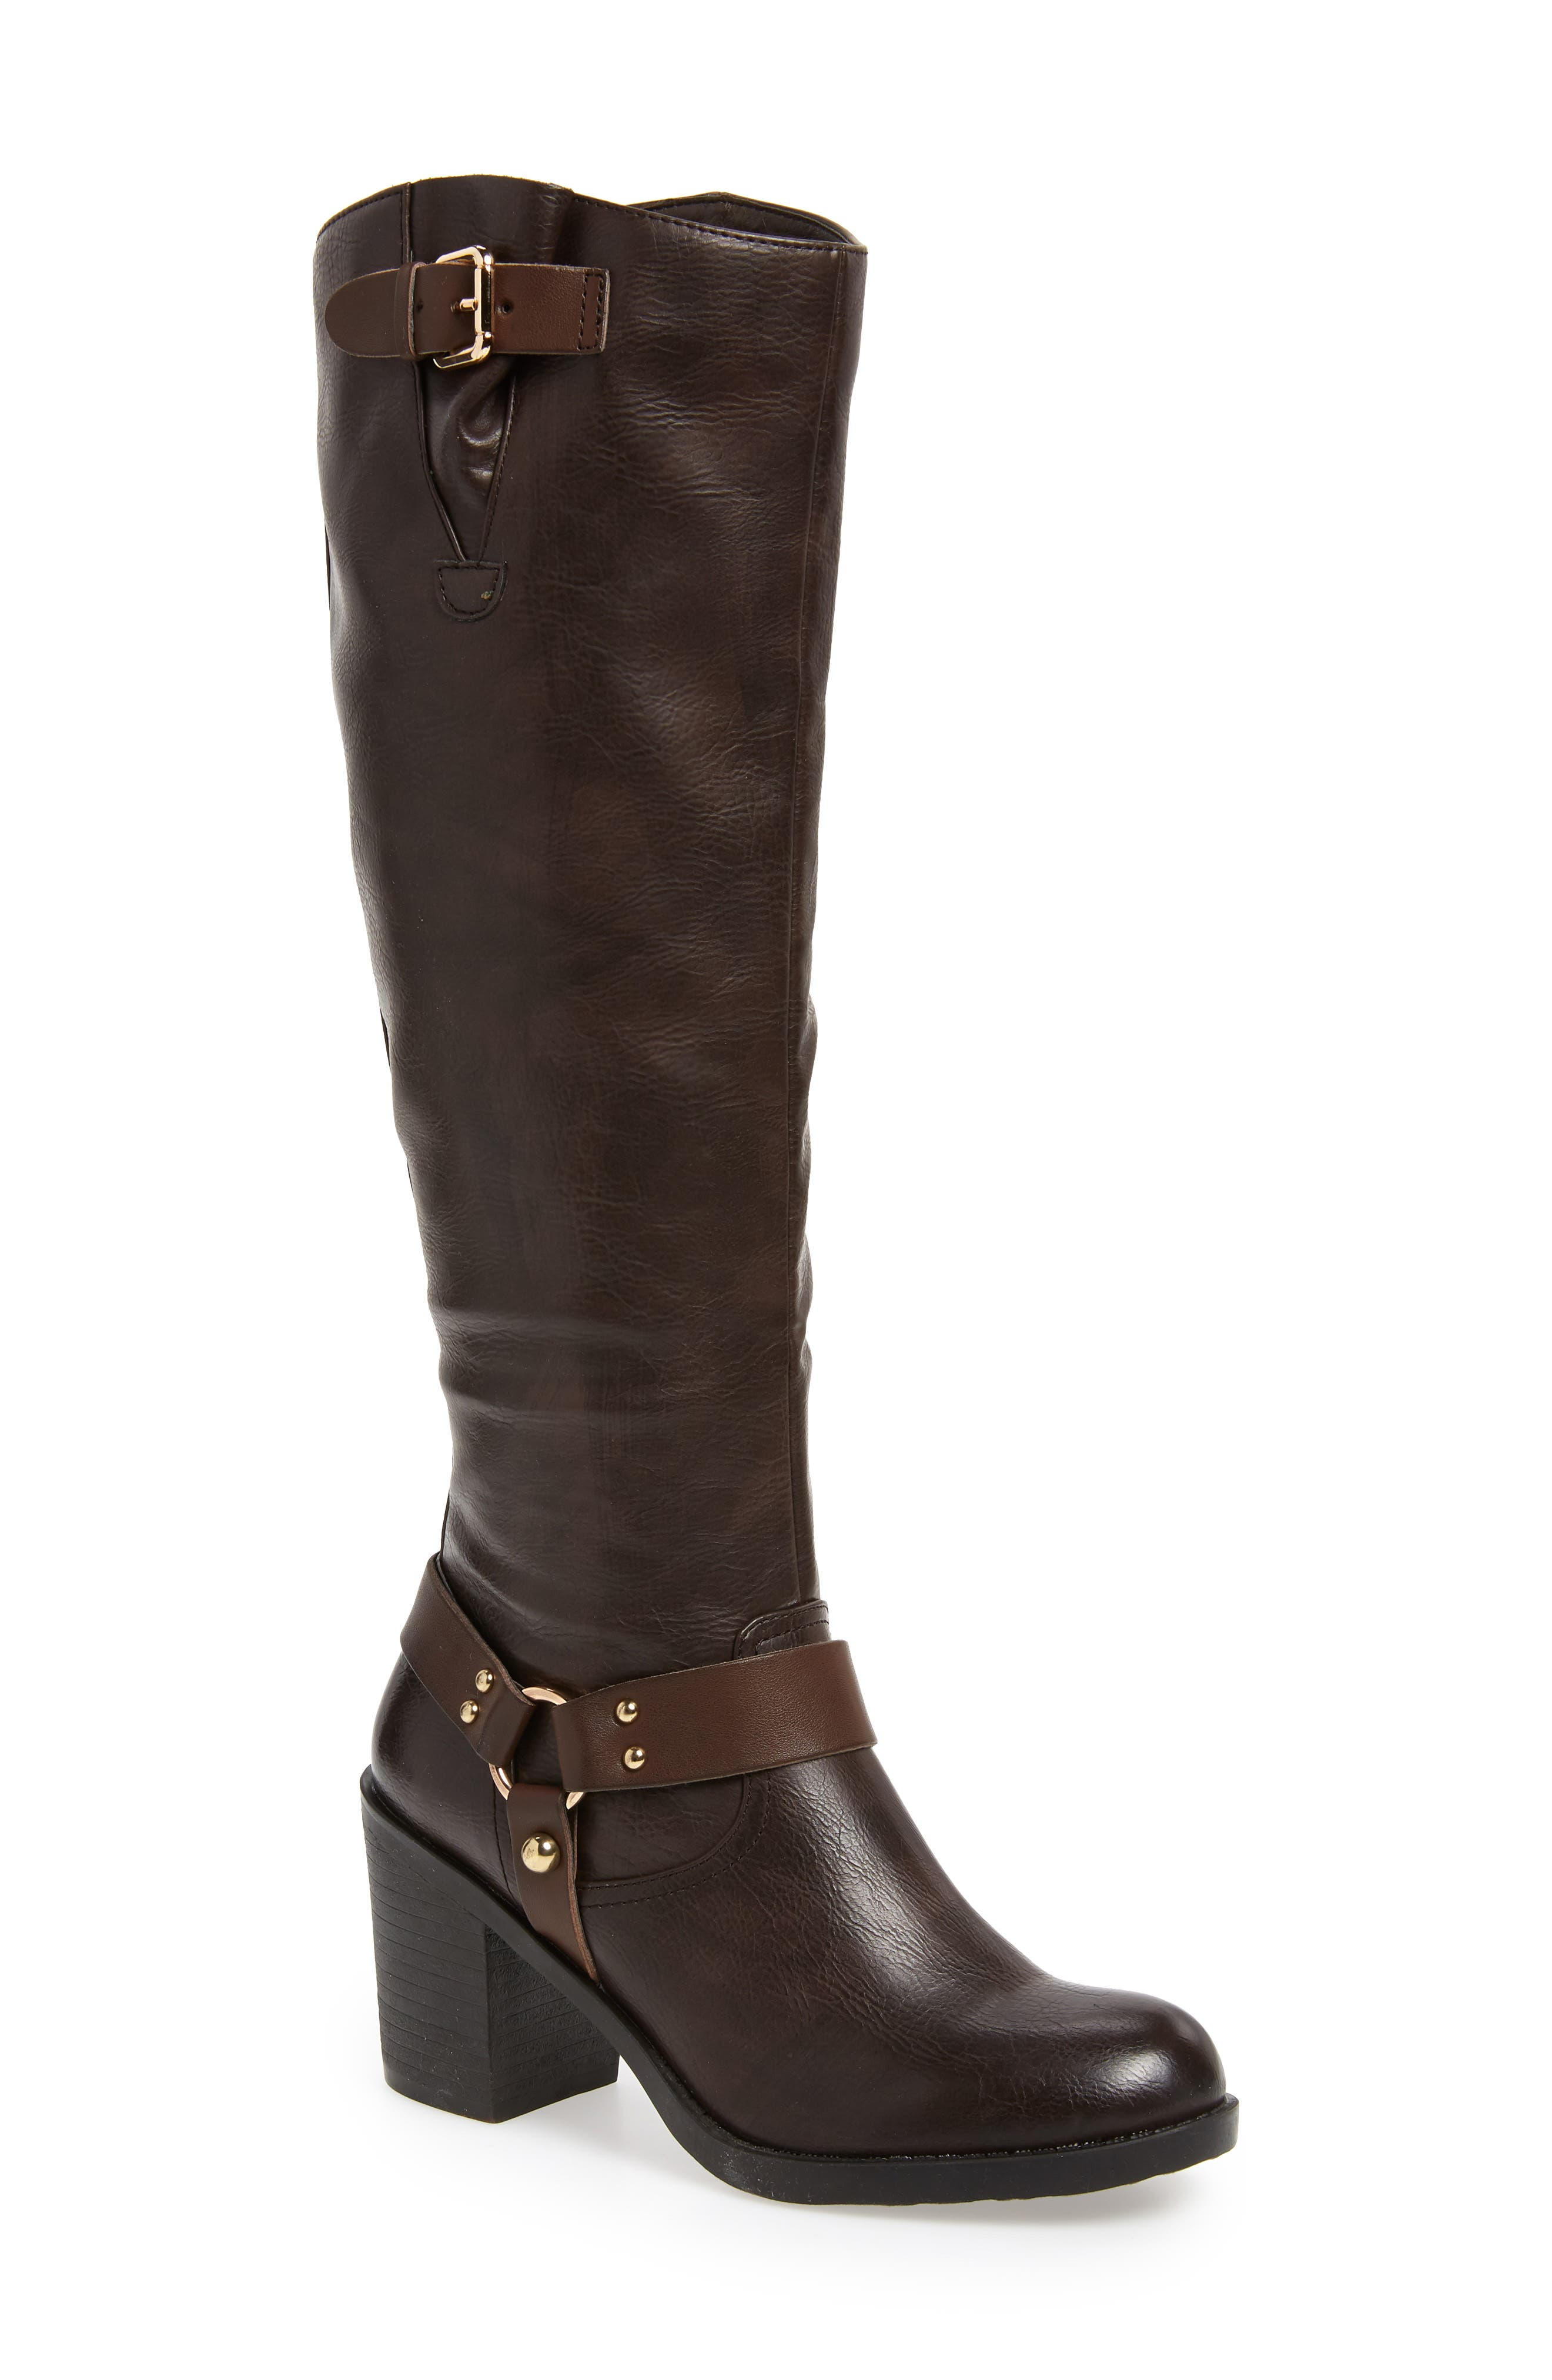 Sbicca Dimarco Knee High Boot, Brown